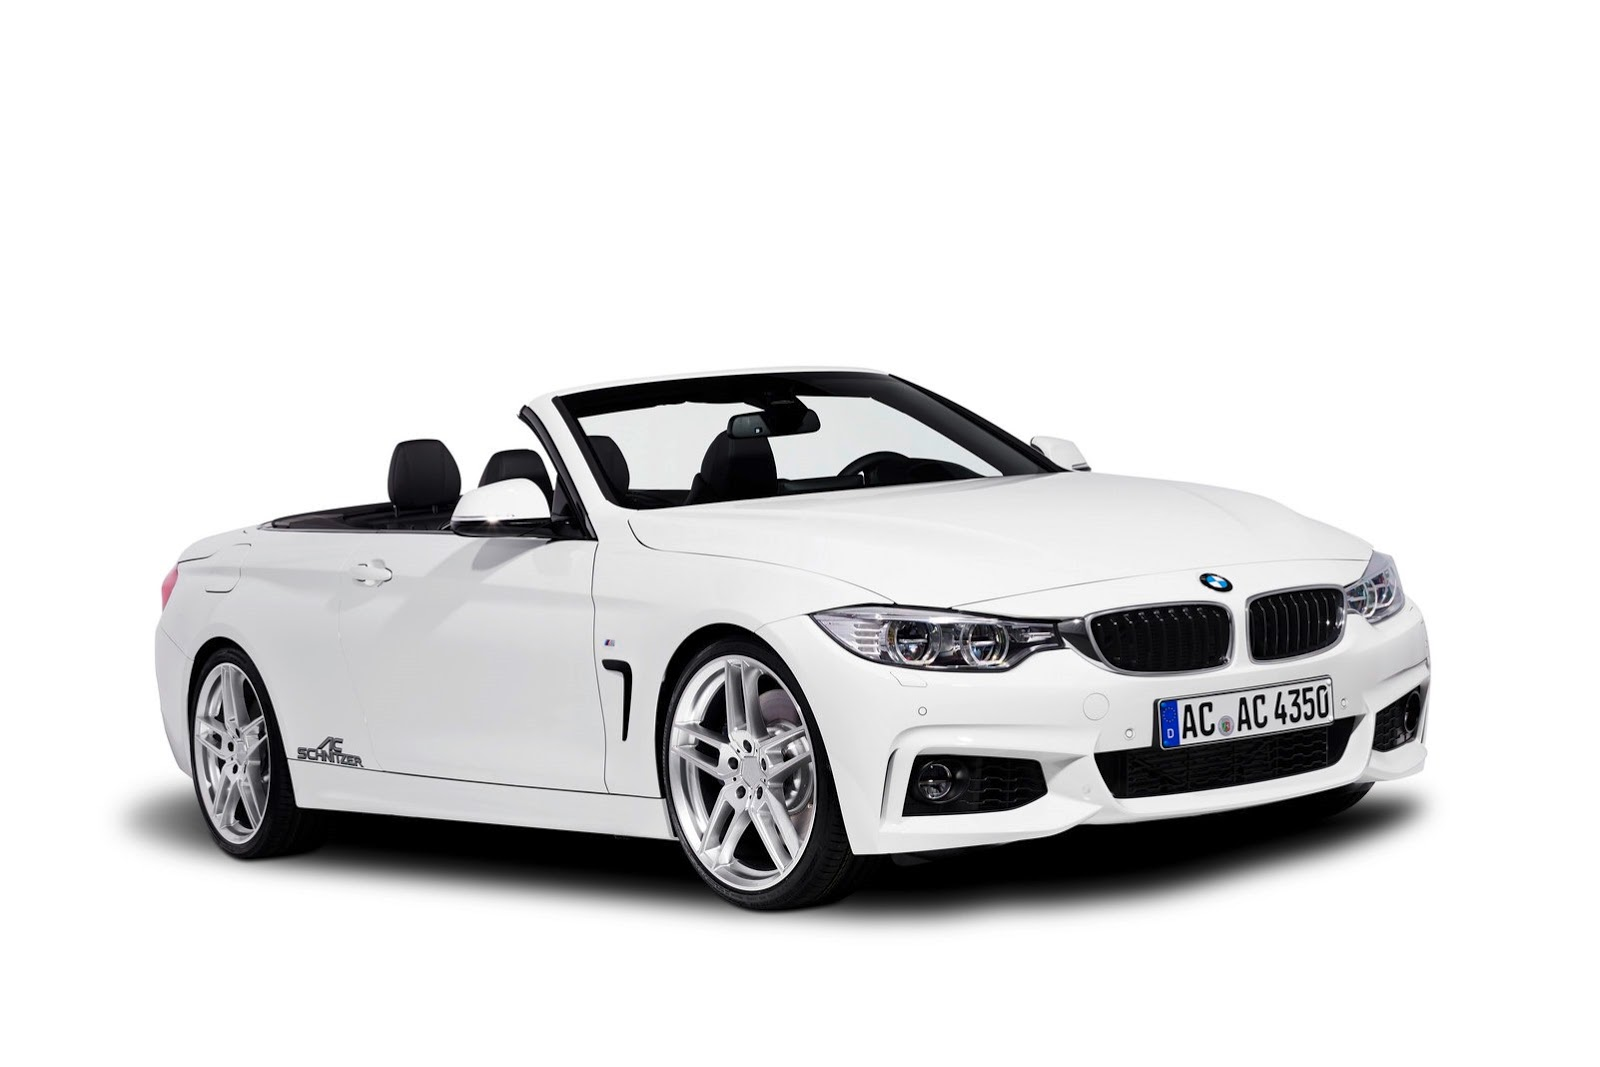 schnitzer official bmw 4 series convertible upgrades by ac schnitzer. Cars Review. Best American Auto & Cars Review